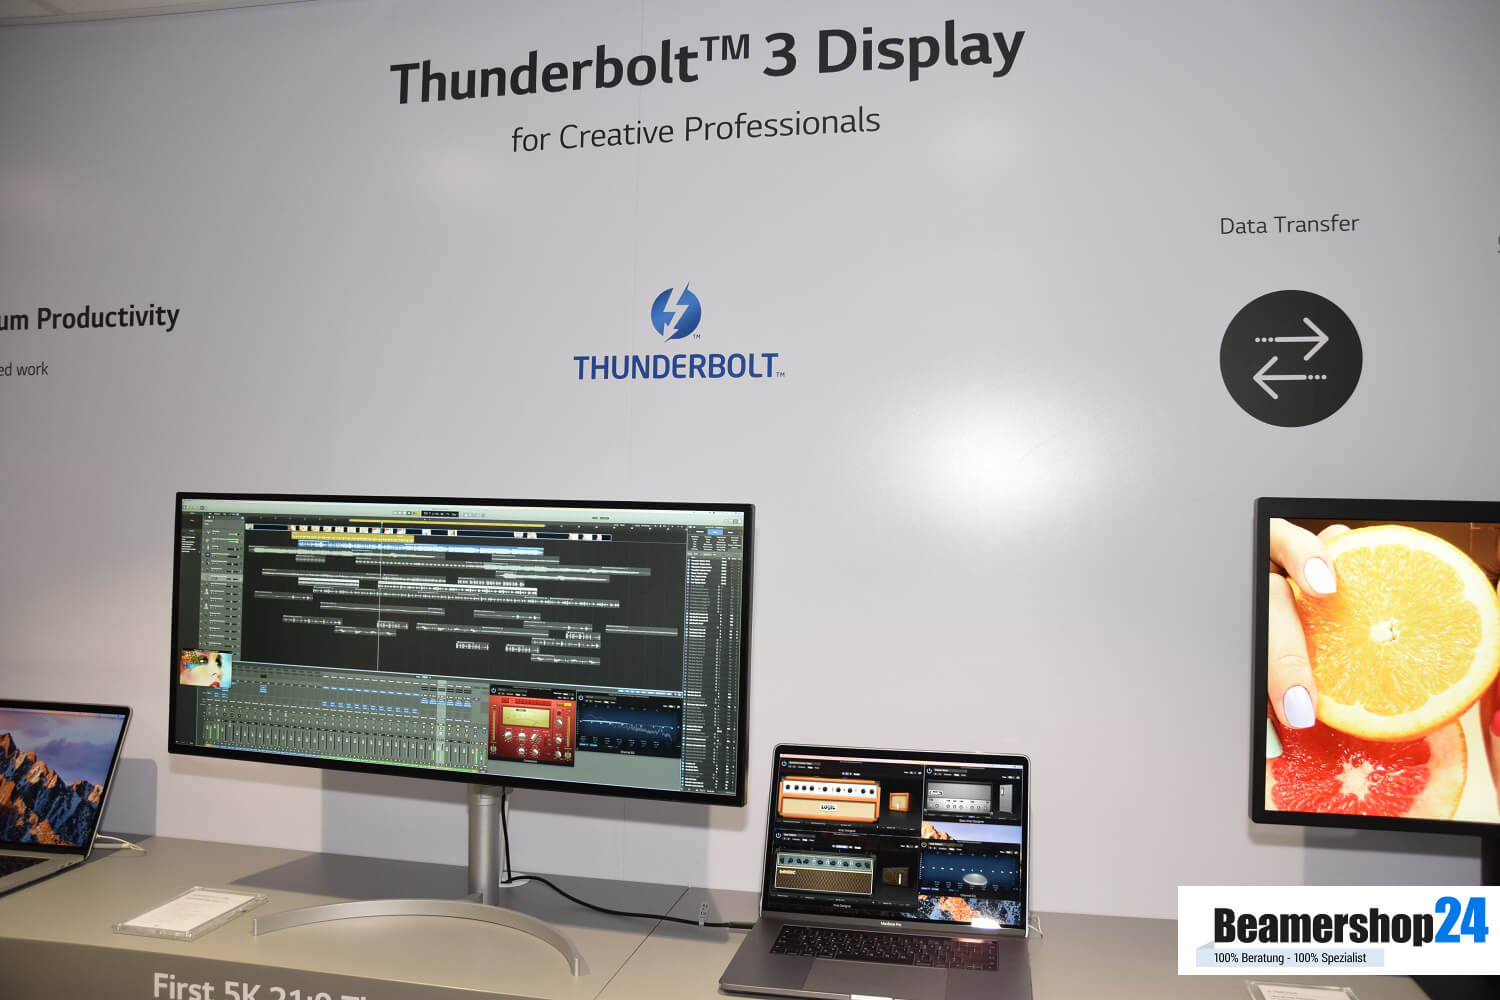 LG ISE 2018 Thunderbolt 3 Display